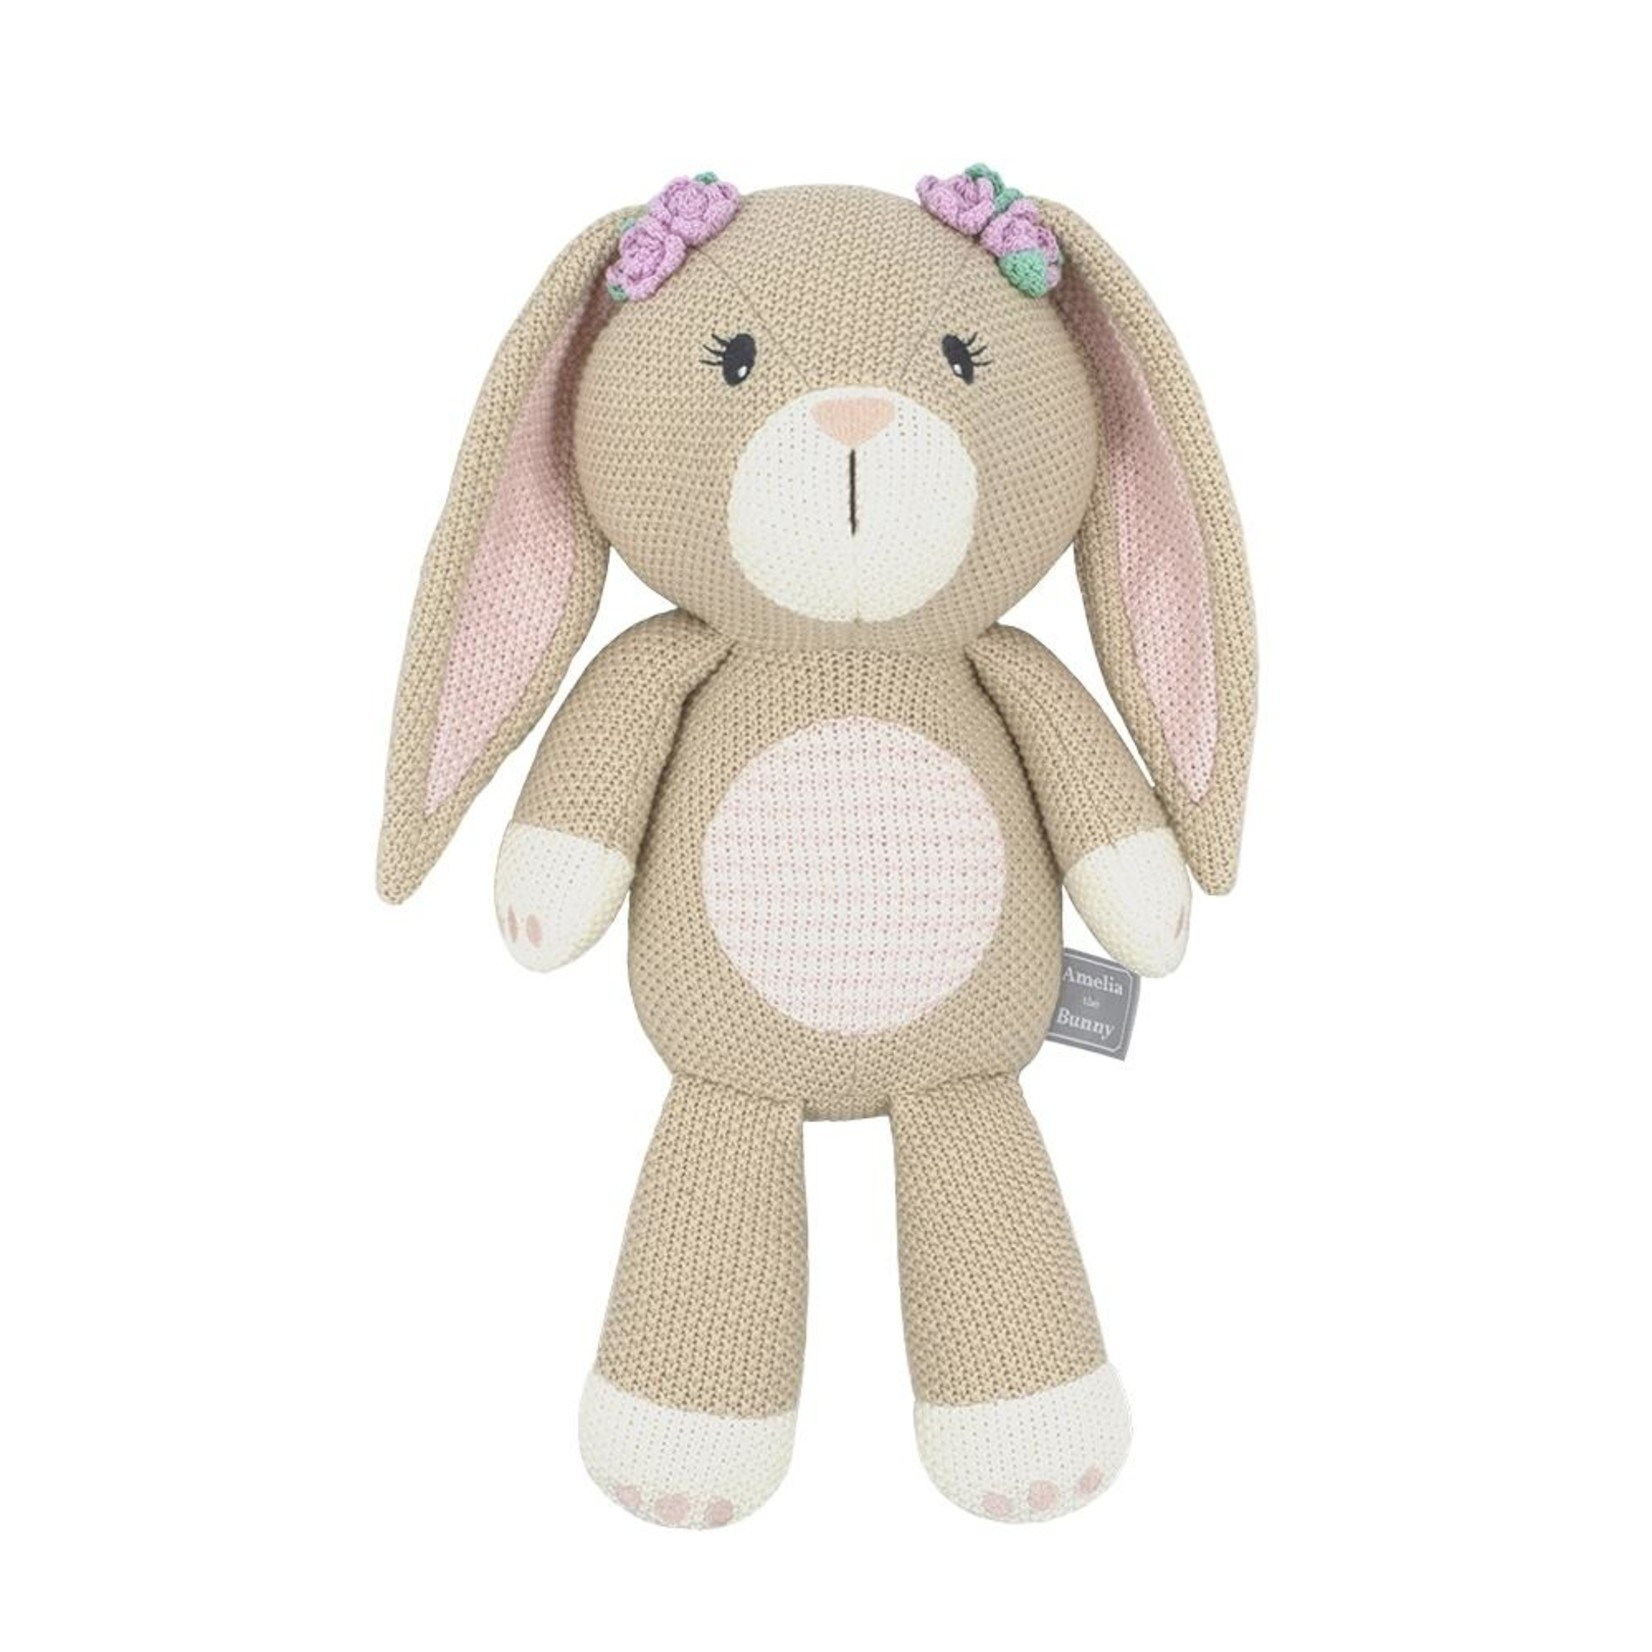 Living Textiles Living Textiles. Whimsical Toy - Amelia the Bunny